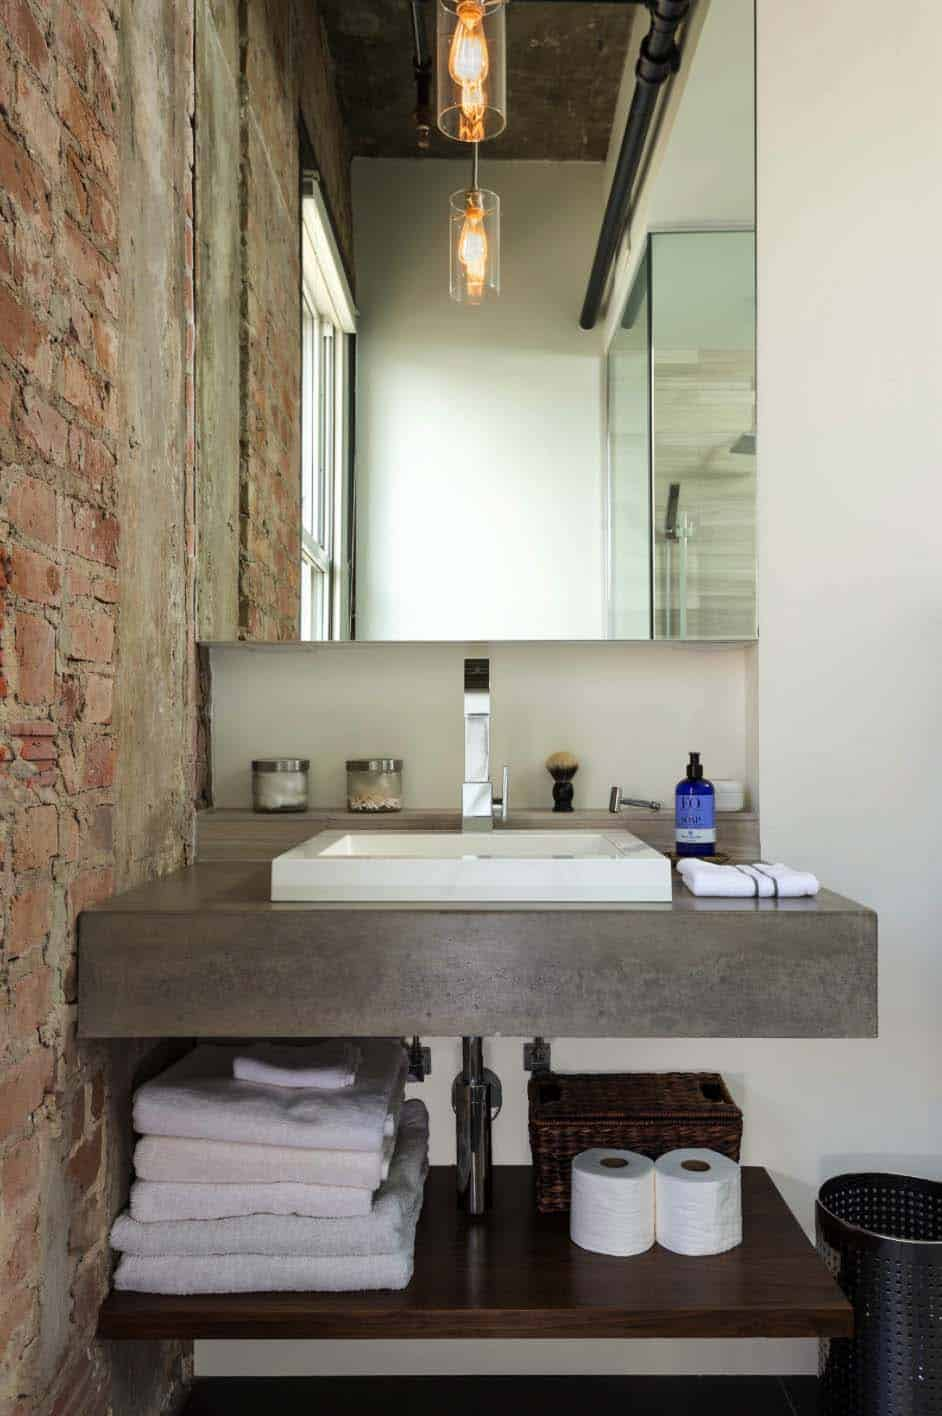 Concrete Bathroom Designs-06-1 Kindesign